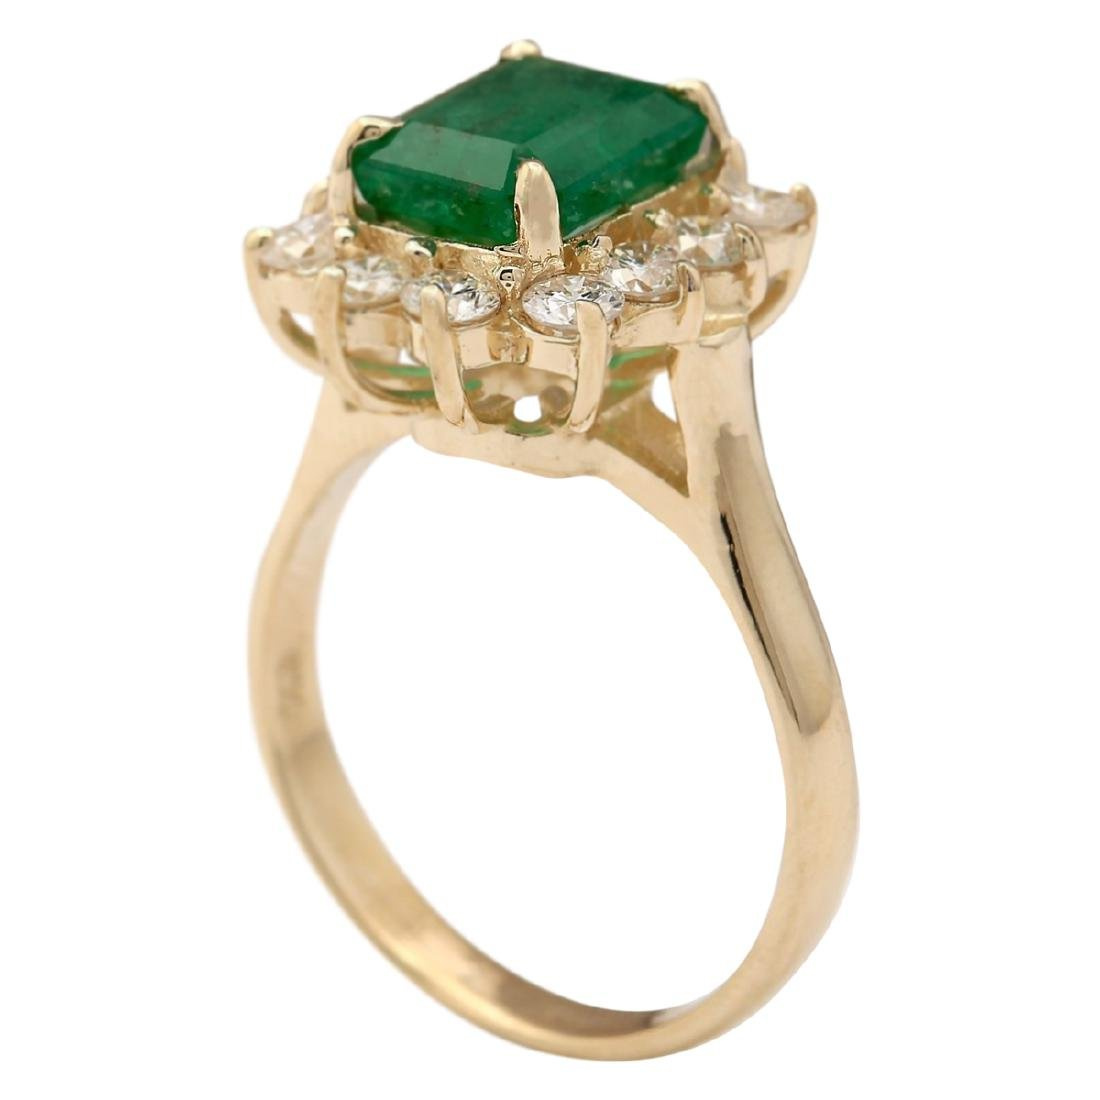 3.21 CTW Natural Emerald And Diamond Ring In 18K Yellow - 3